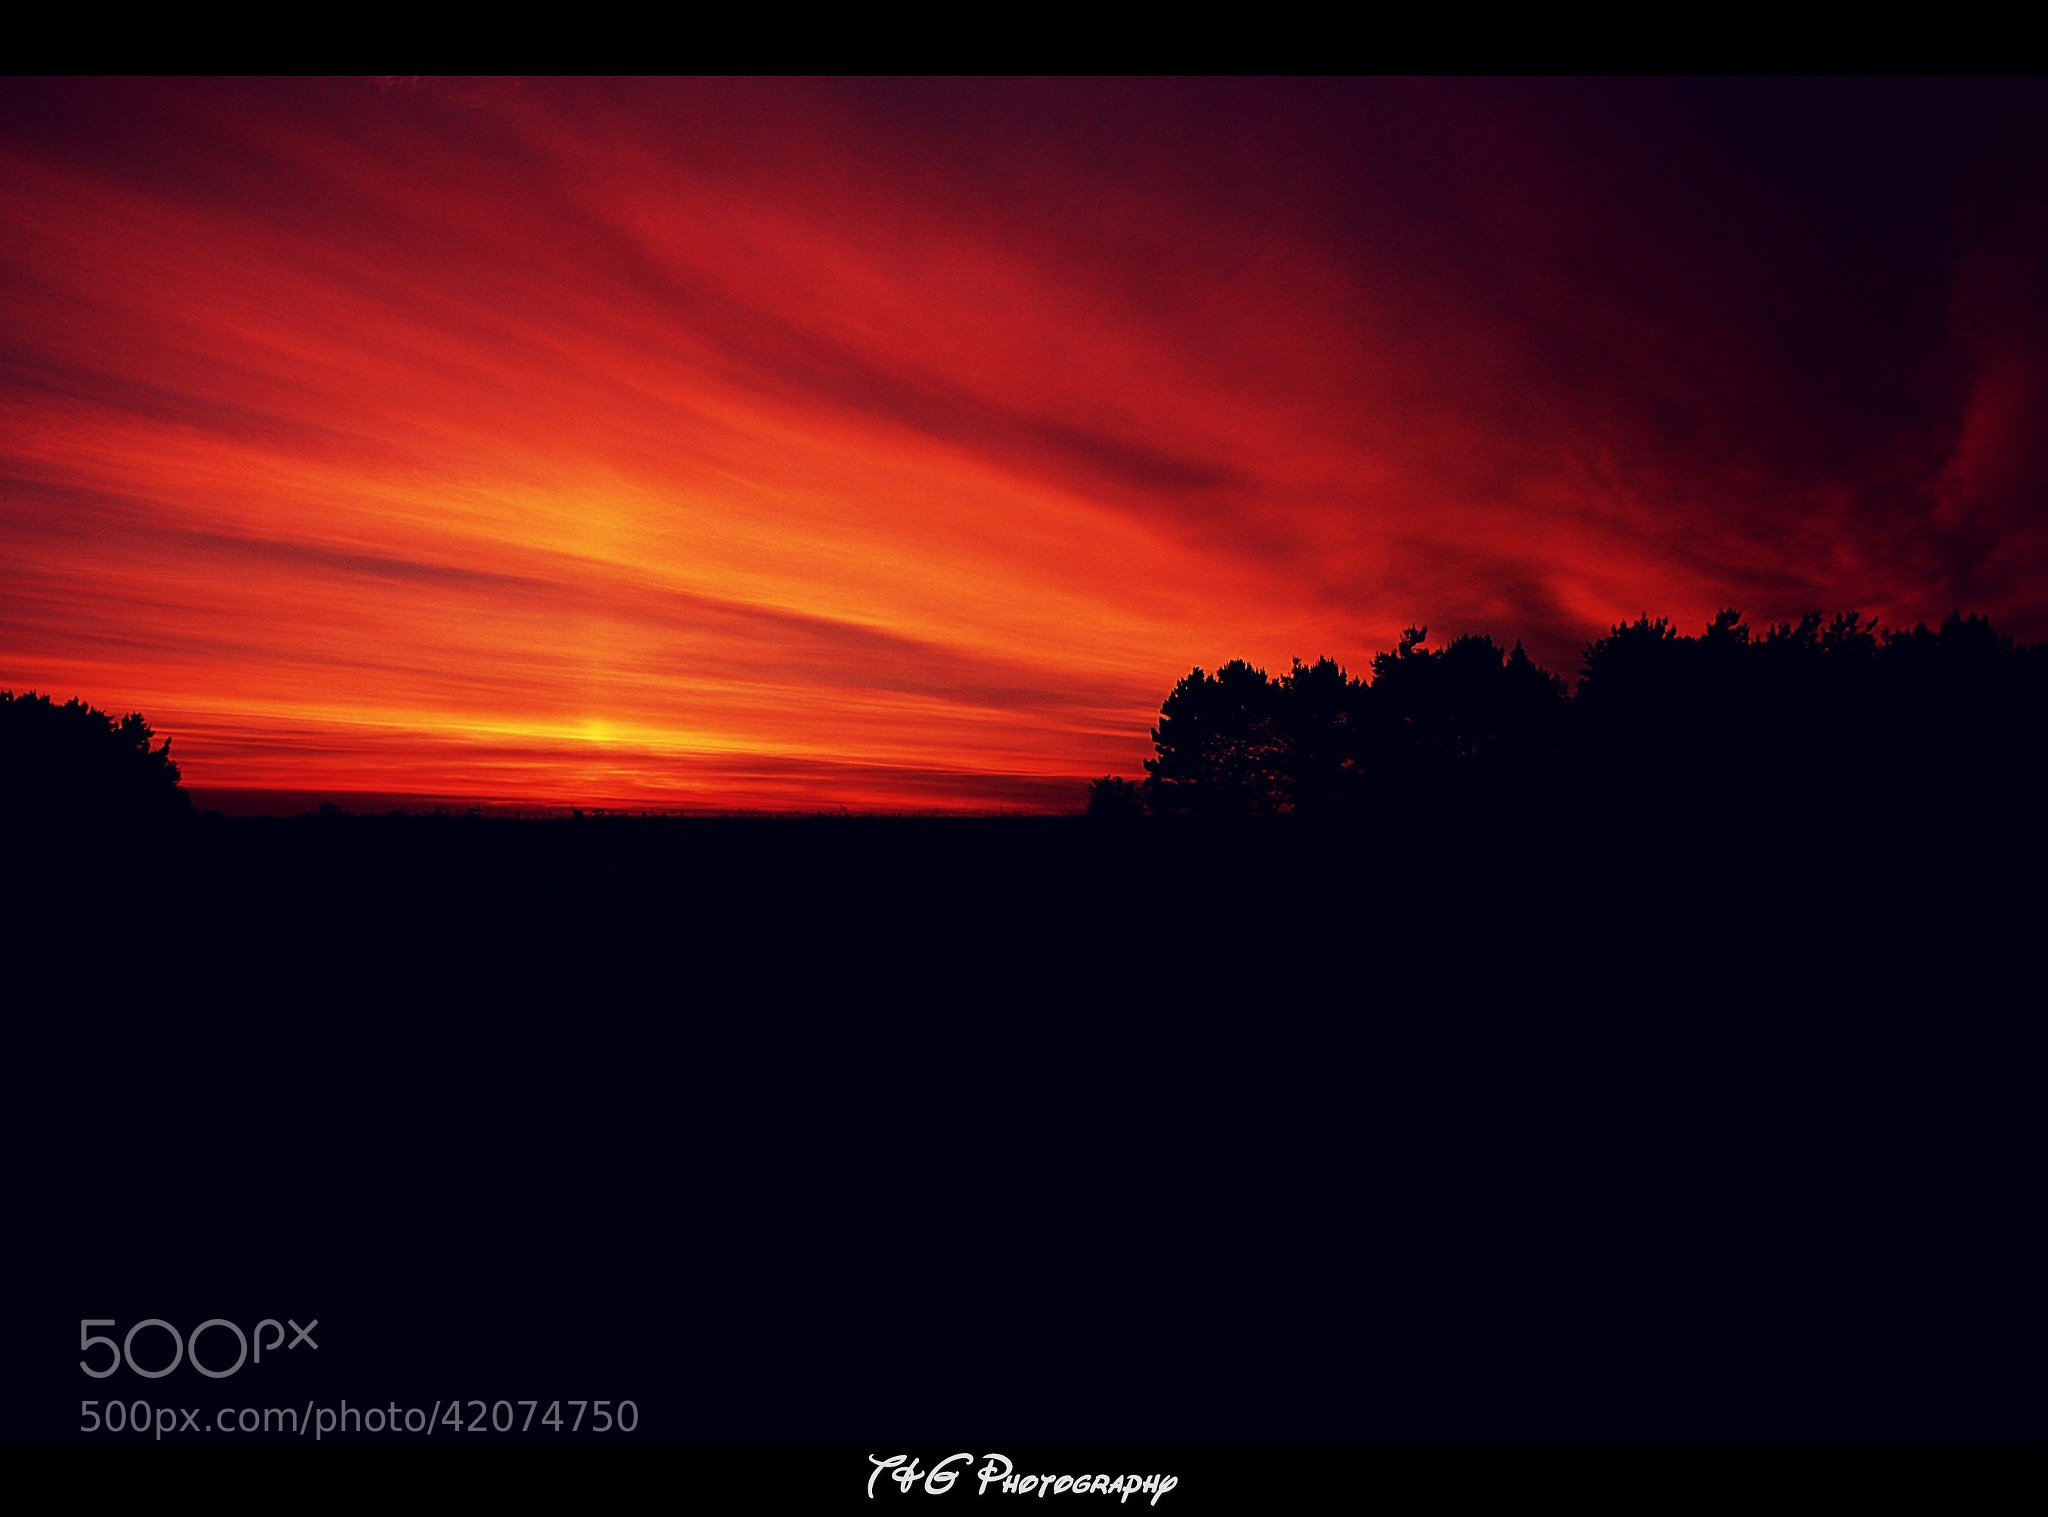 Photograph Sunset silhouette by T&G Photography  on 500px